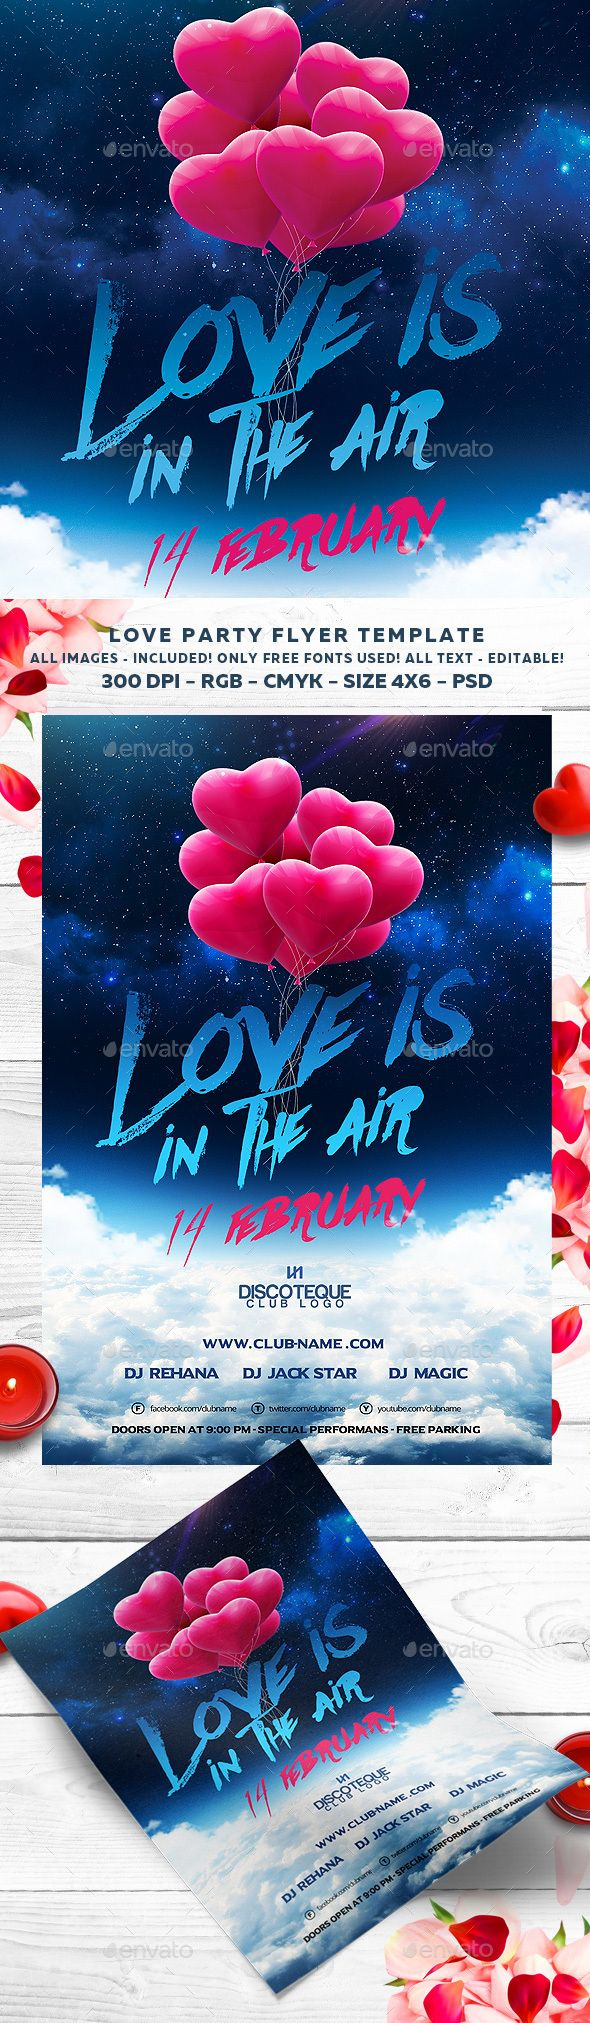 Valentines Day Flyer Template PSD #design Download: http://graphicriver.net/item/valentines-day-flyer/14485919?ref=ksioks